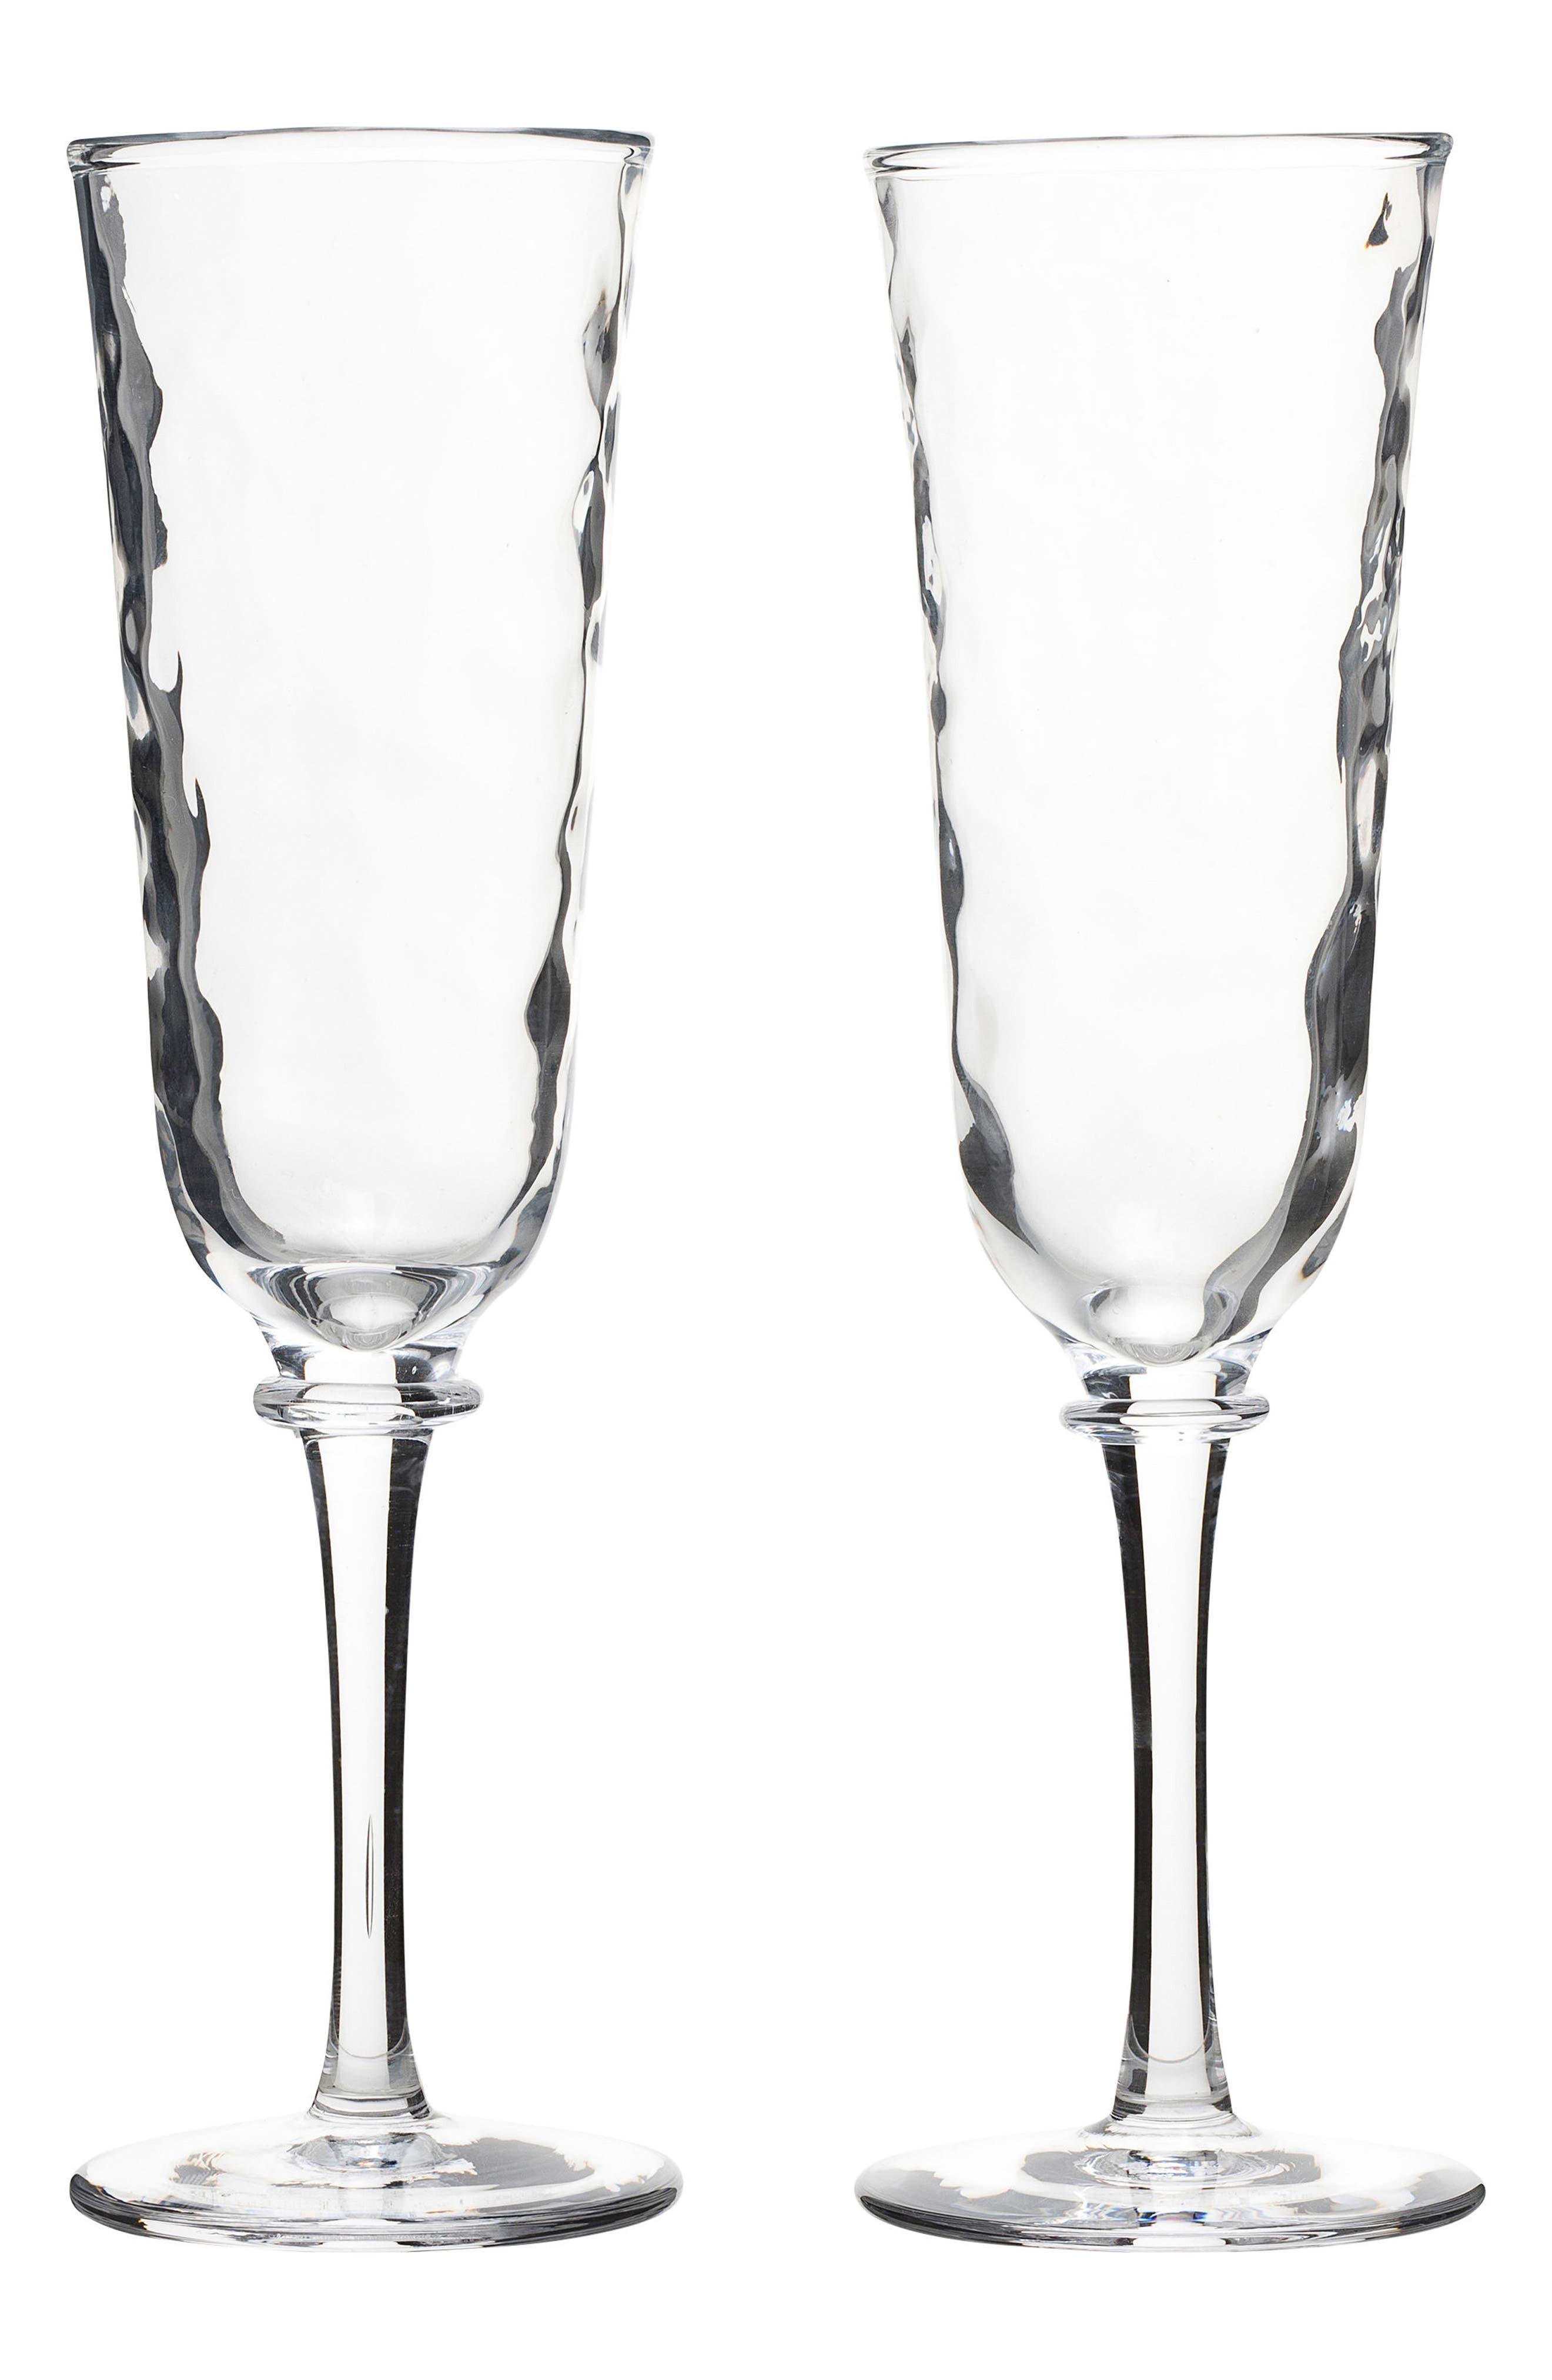 Main Image - Juliska Carine Set of 2 Champagne Flutes